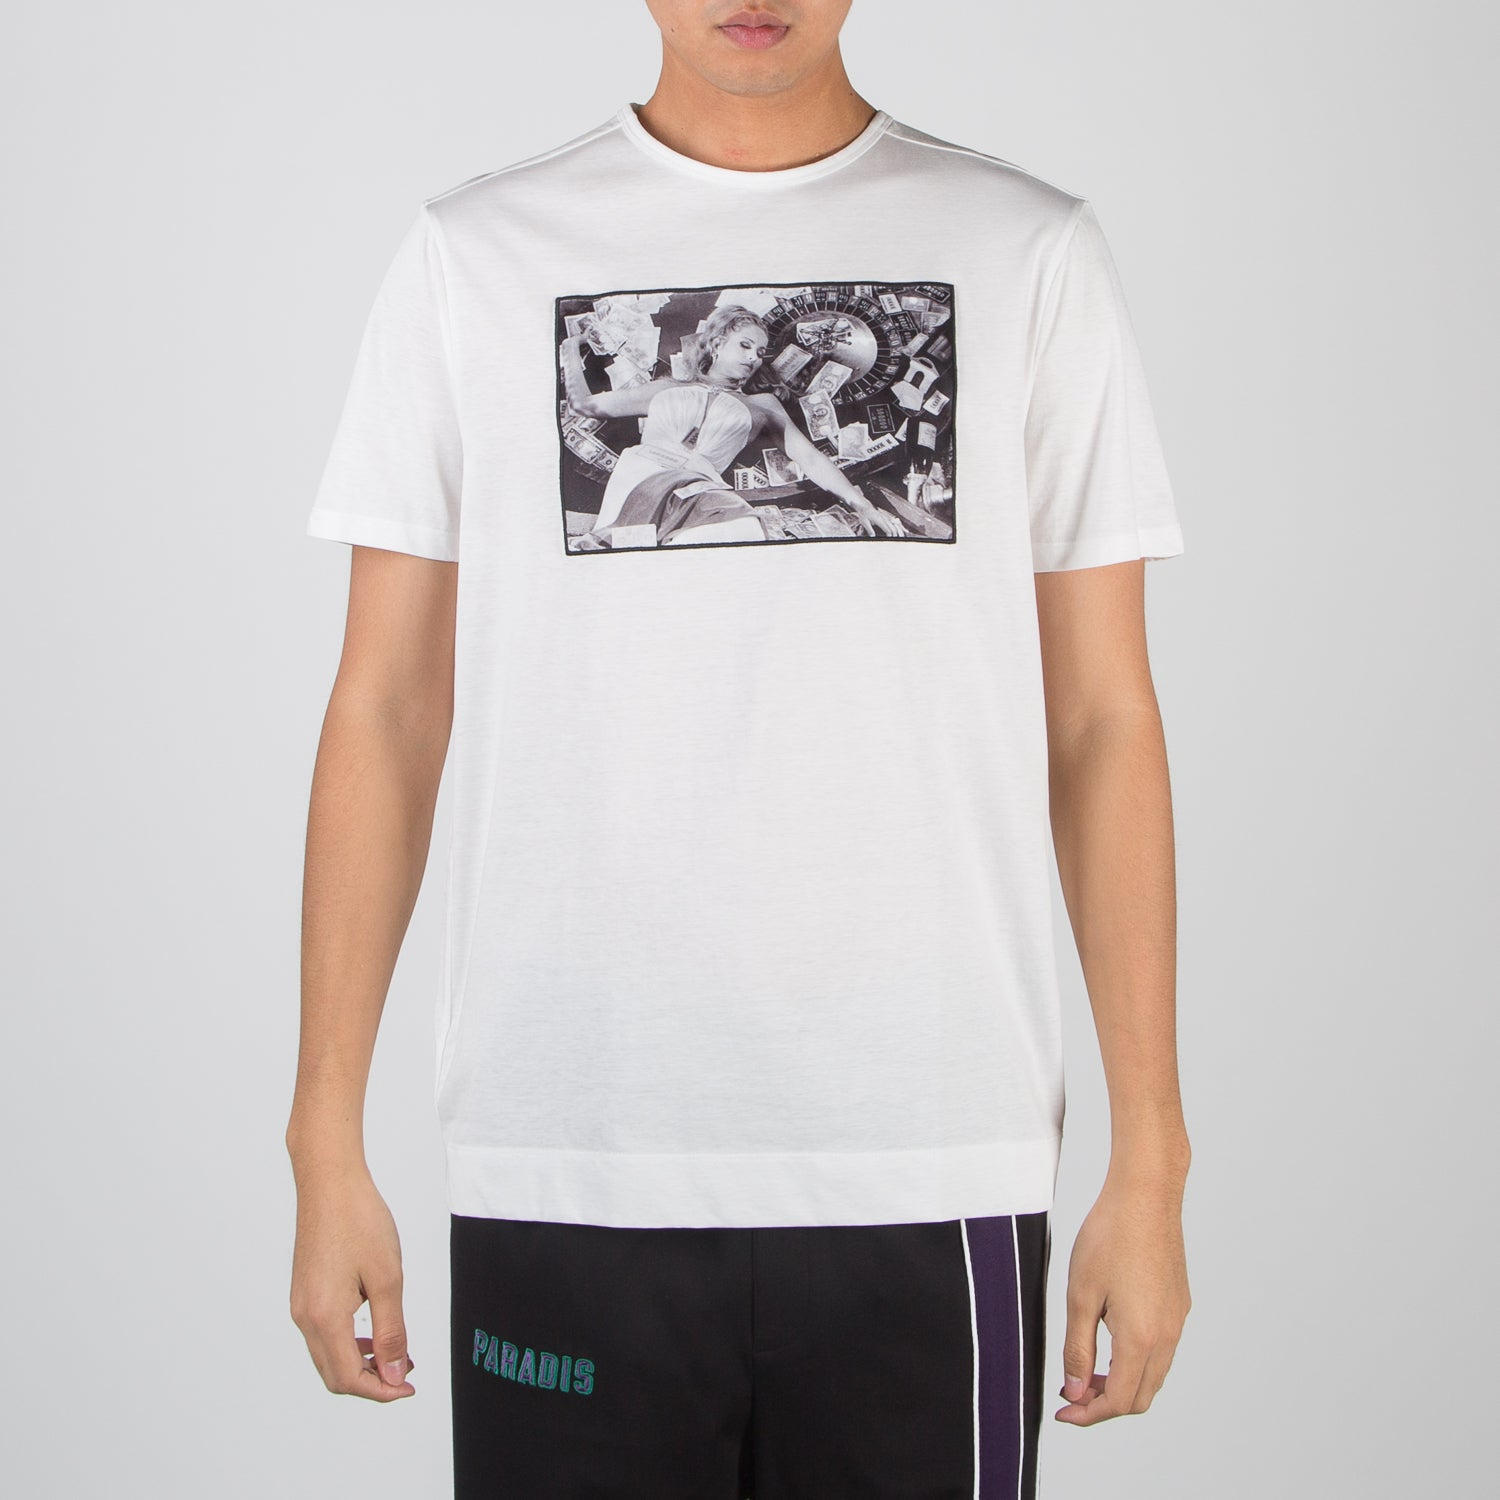 Casino Royale Terry O'Neill picture t-shirt in white by Limitato at Secret Location